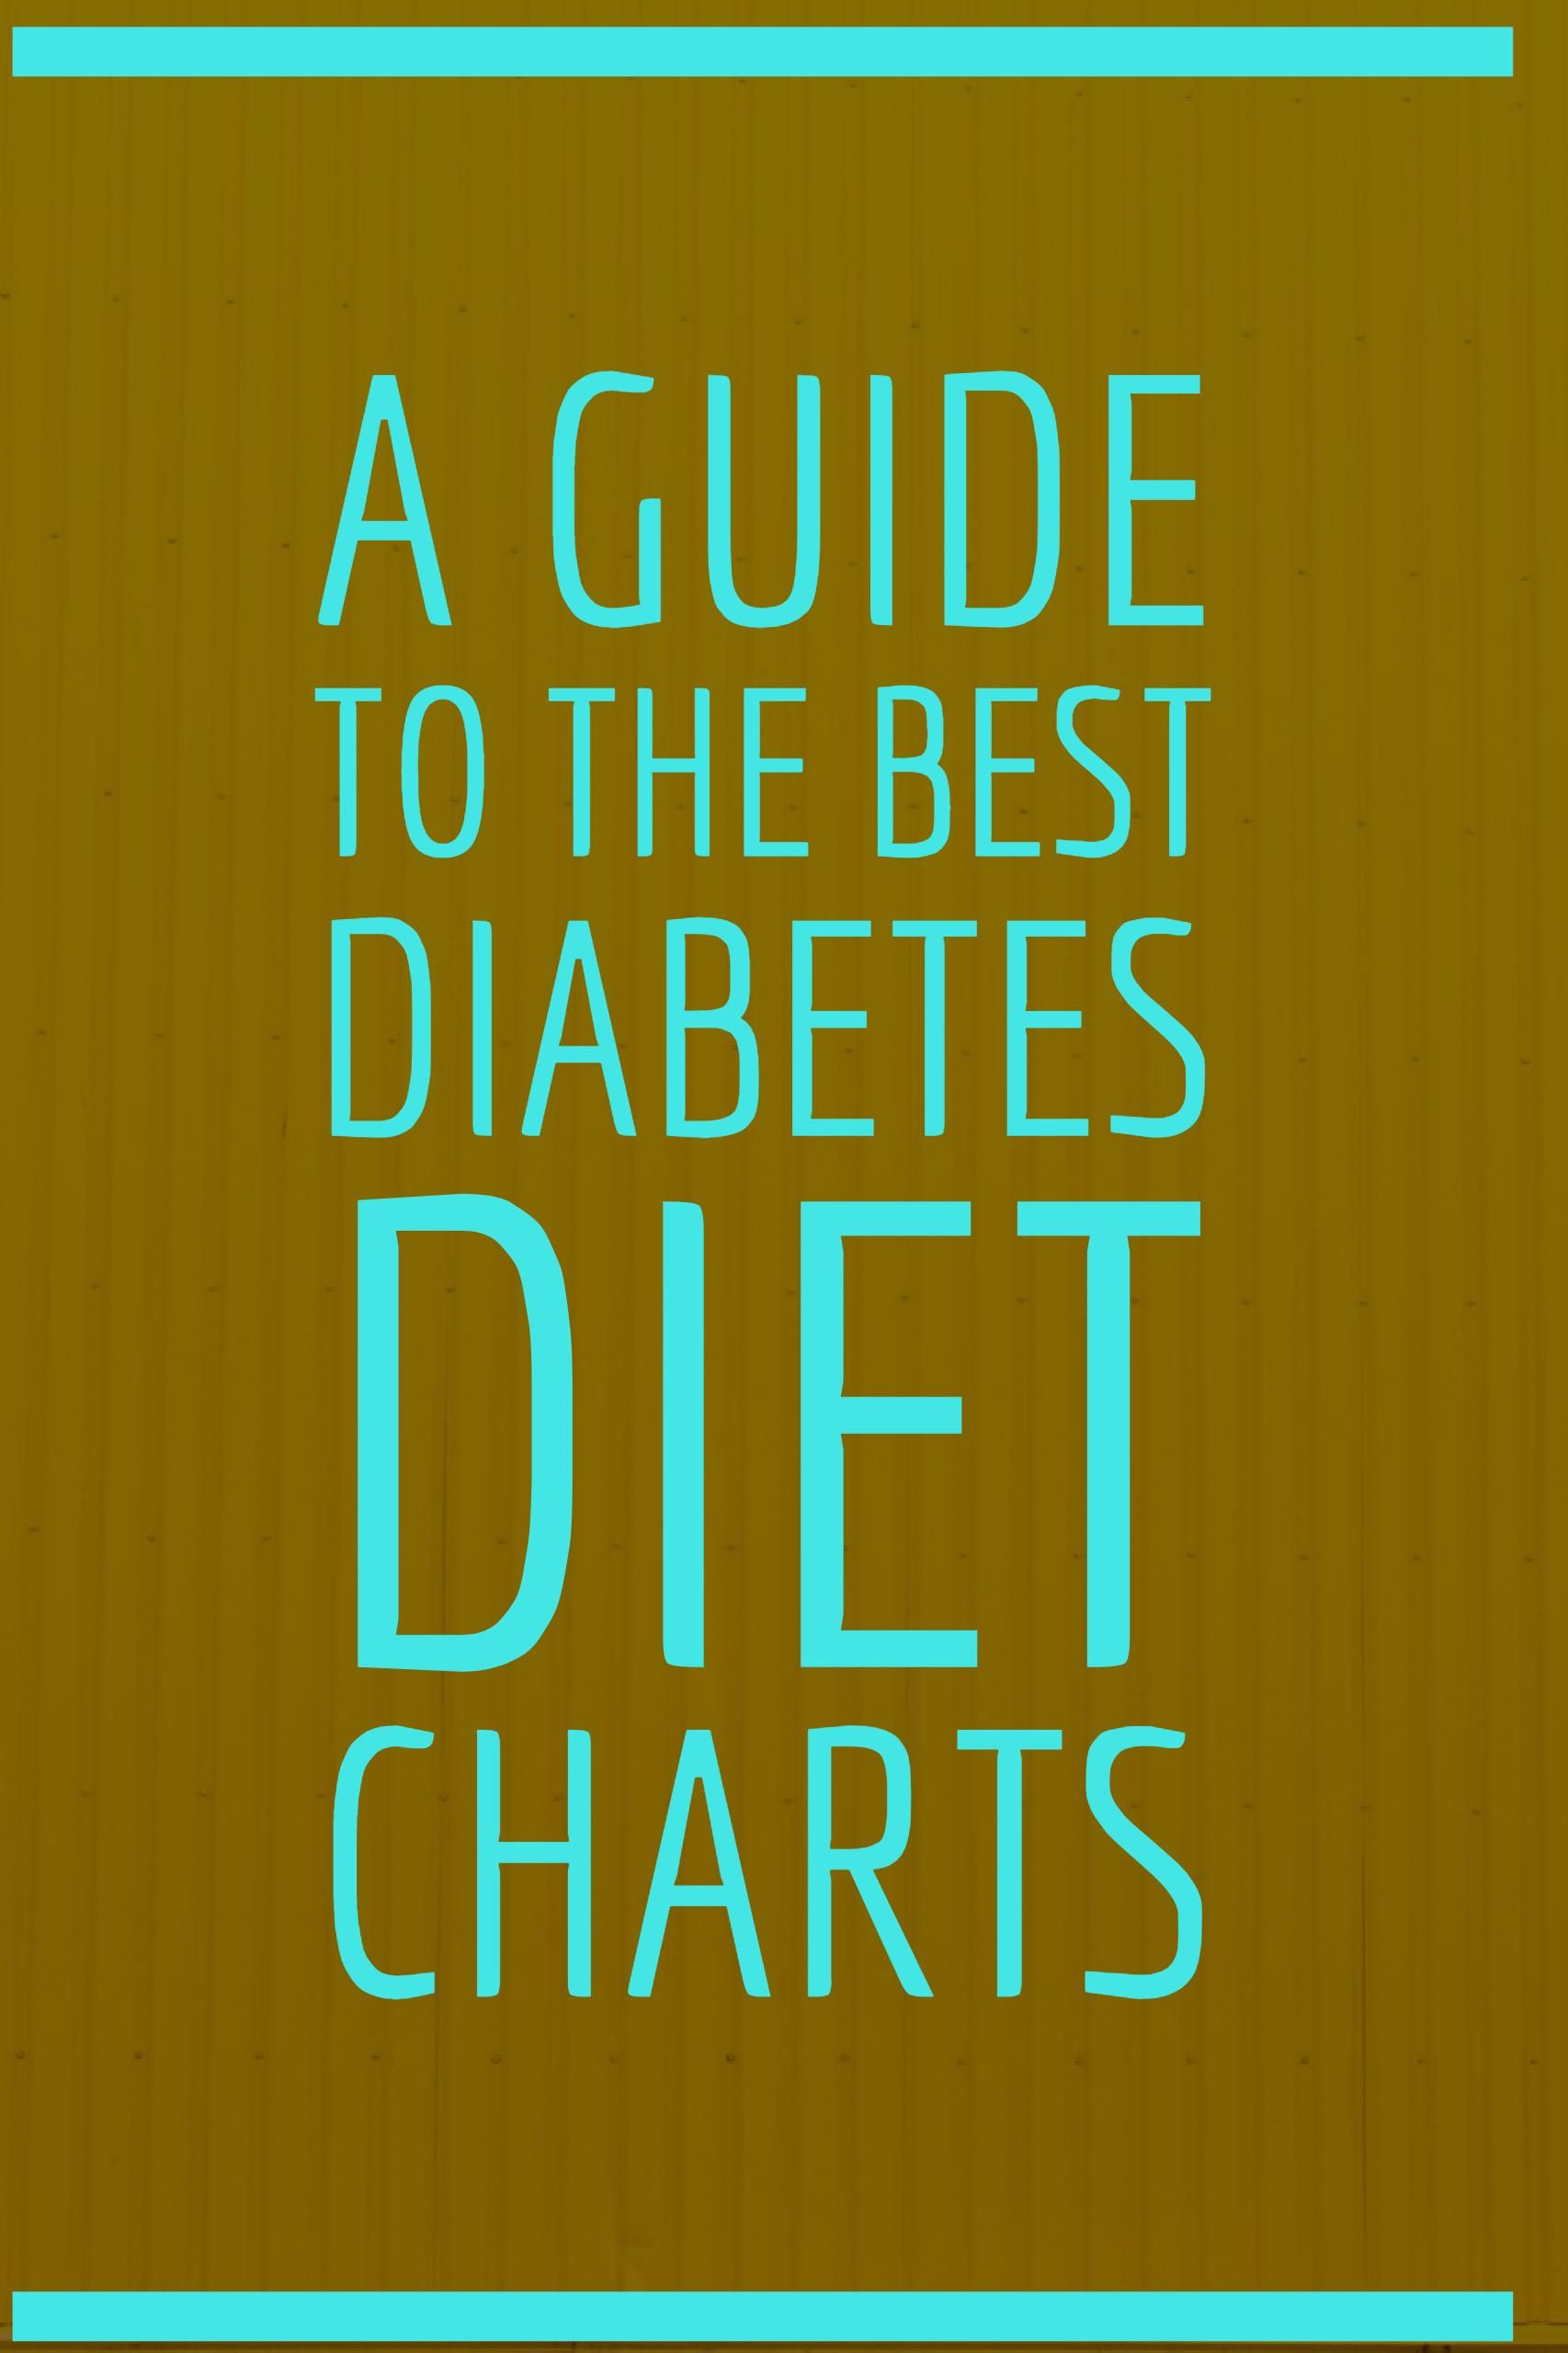 Diabetic Diet Charts Can Help You Manage Your Diabetes Print